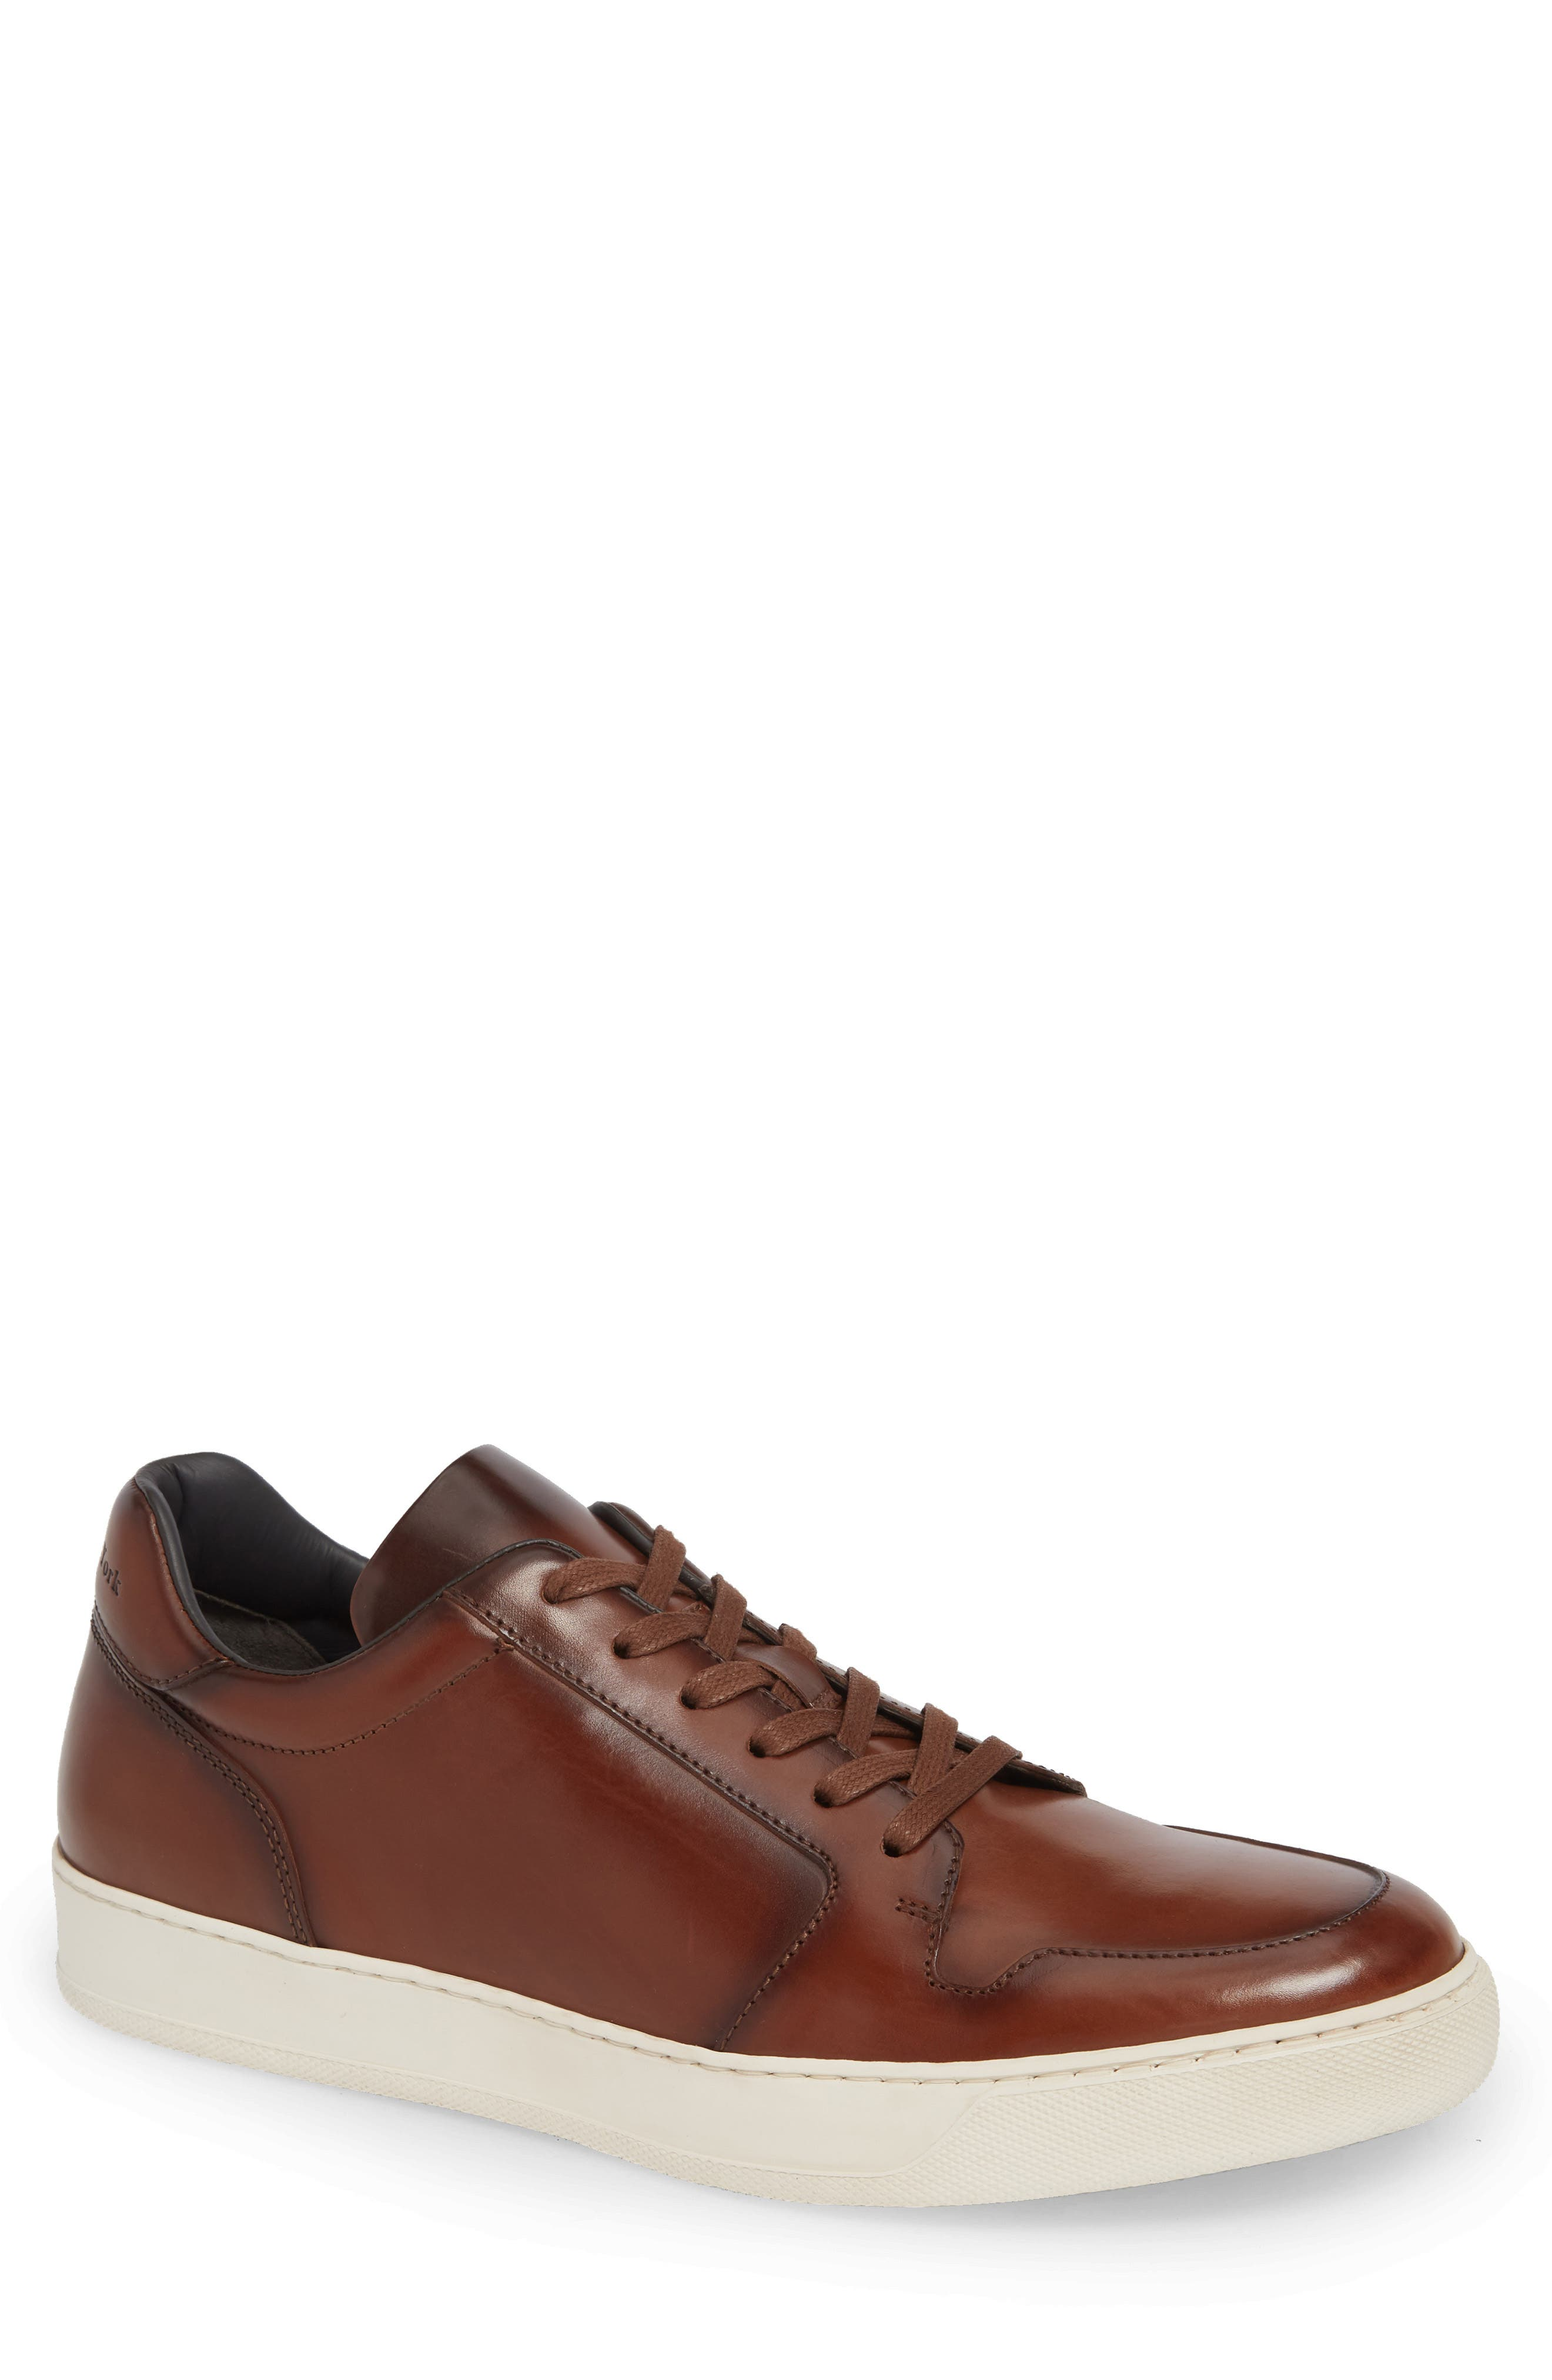 Munich Sneaker,                         Main,                         color, MARRONE LEATHER